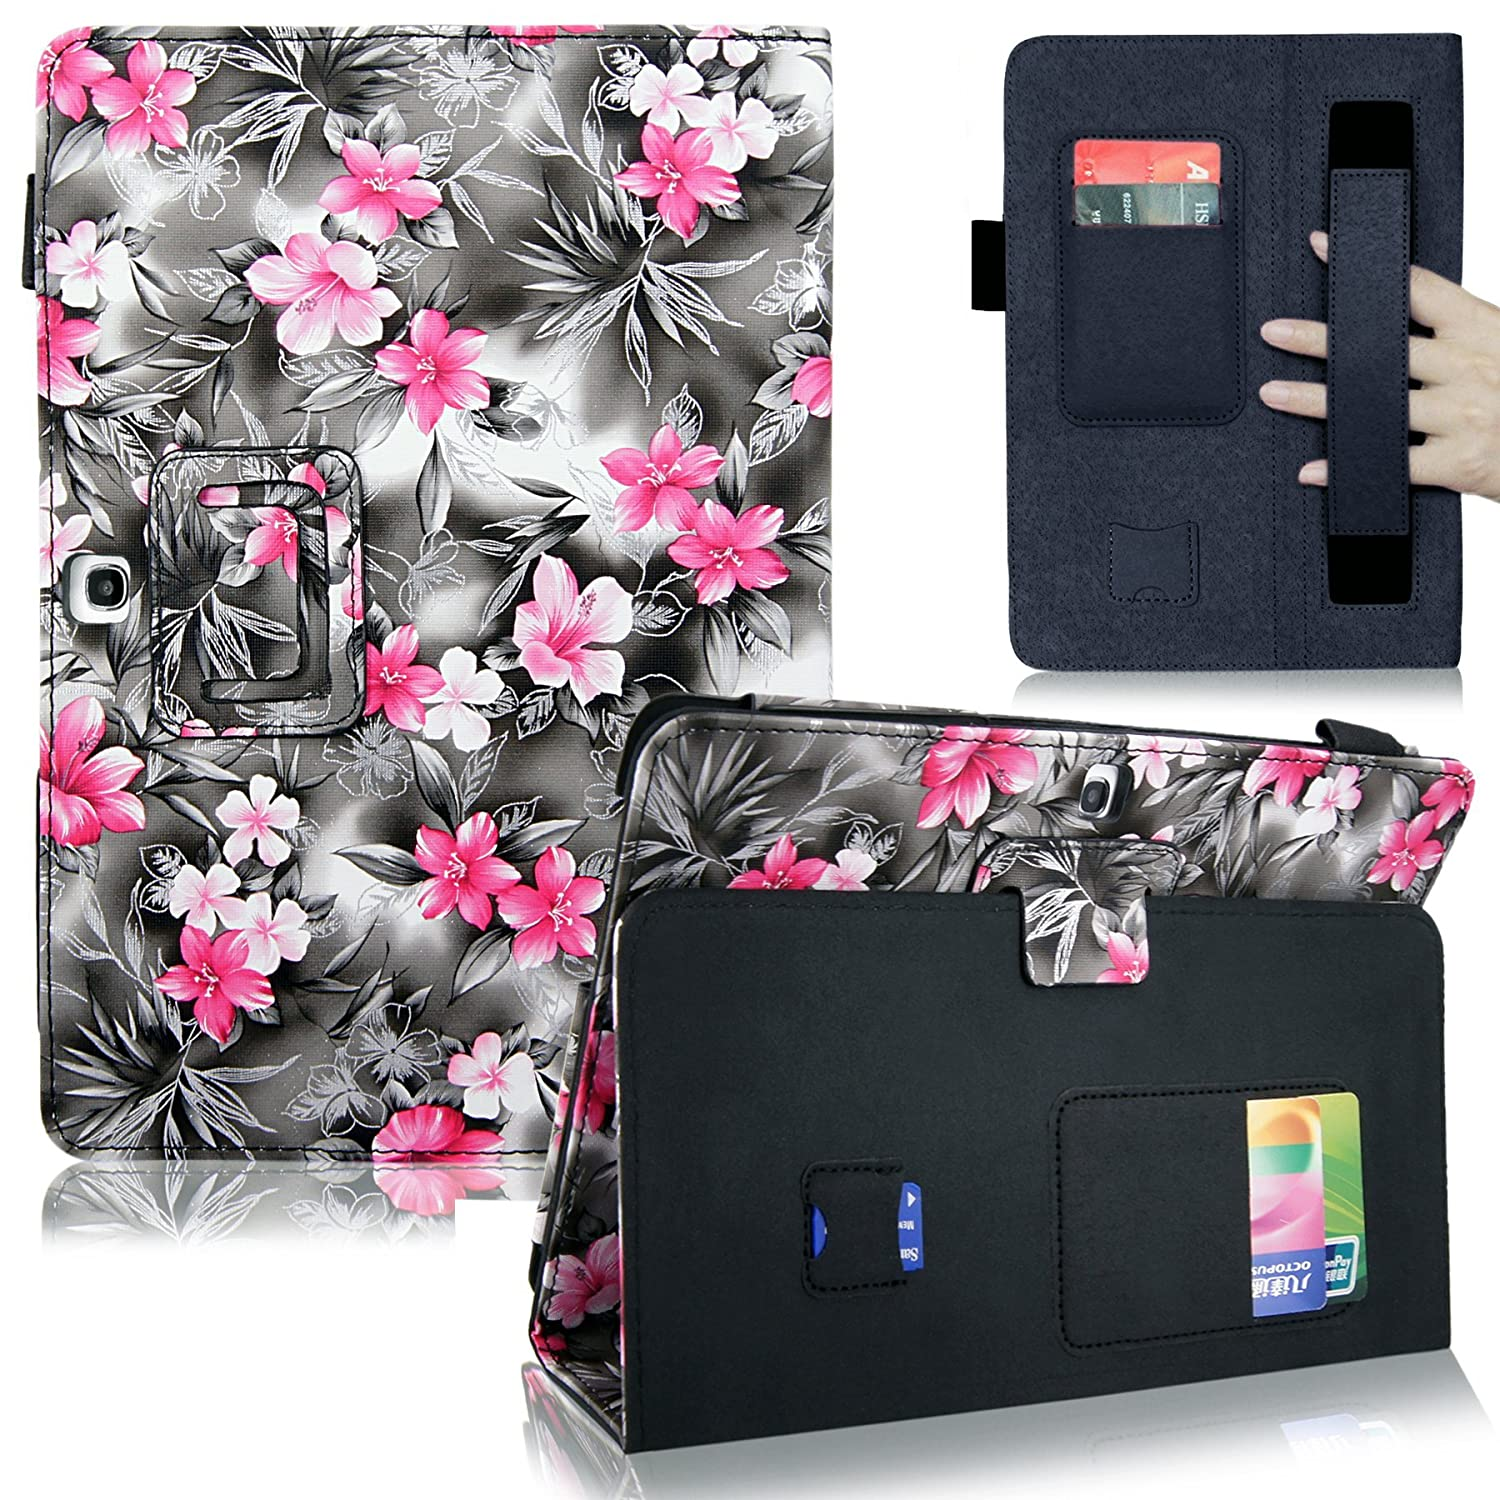 Cellularvilla Case for Samsung Galaxy tab 3 7 8 Gen Pu Leather Elastic Hand Strap Flip Folio Stand Case Cover + Stylus Touch Pen ultra thin smart flip pu leather cover for lenovo tab 2 a10 30 70f x30f x30m 10 1 tablet case screen protector stylus pen